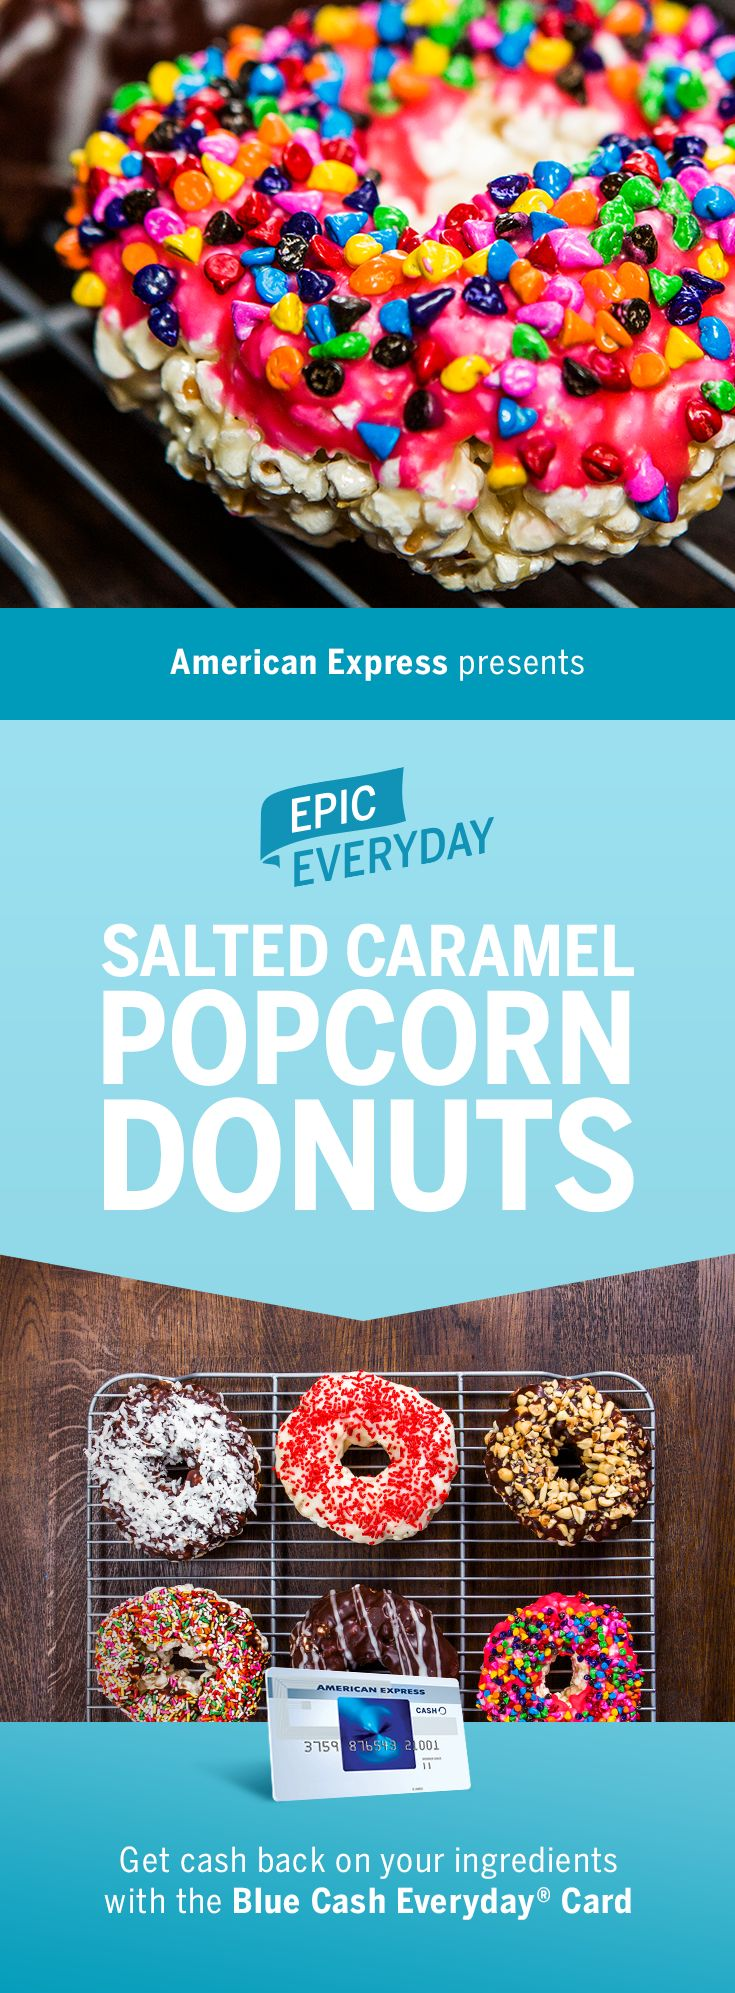 """Make this in three easy steps: create a sweet/savory salted caramel sauce, mold popcorn into """"donut"""" shape, then add frosting and sprinkles. Click the pin to get the full recipe."""